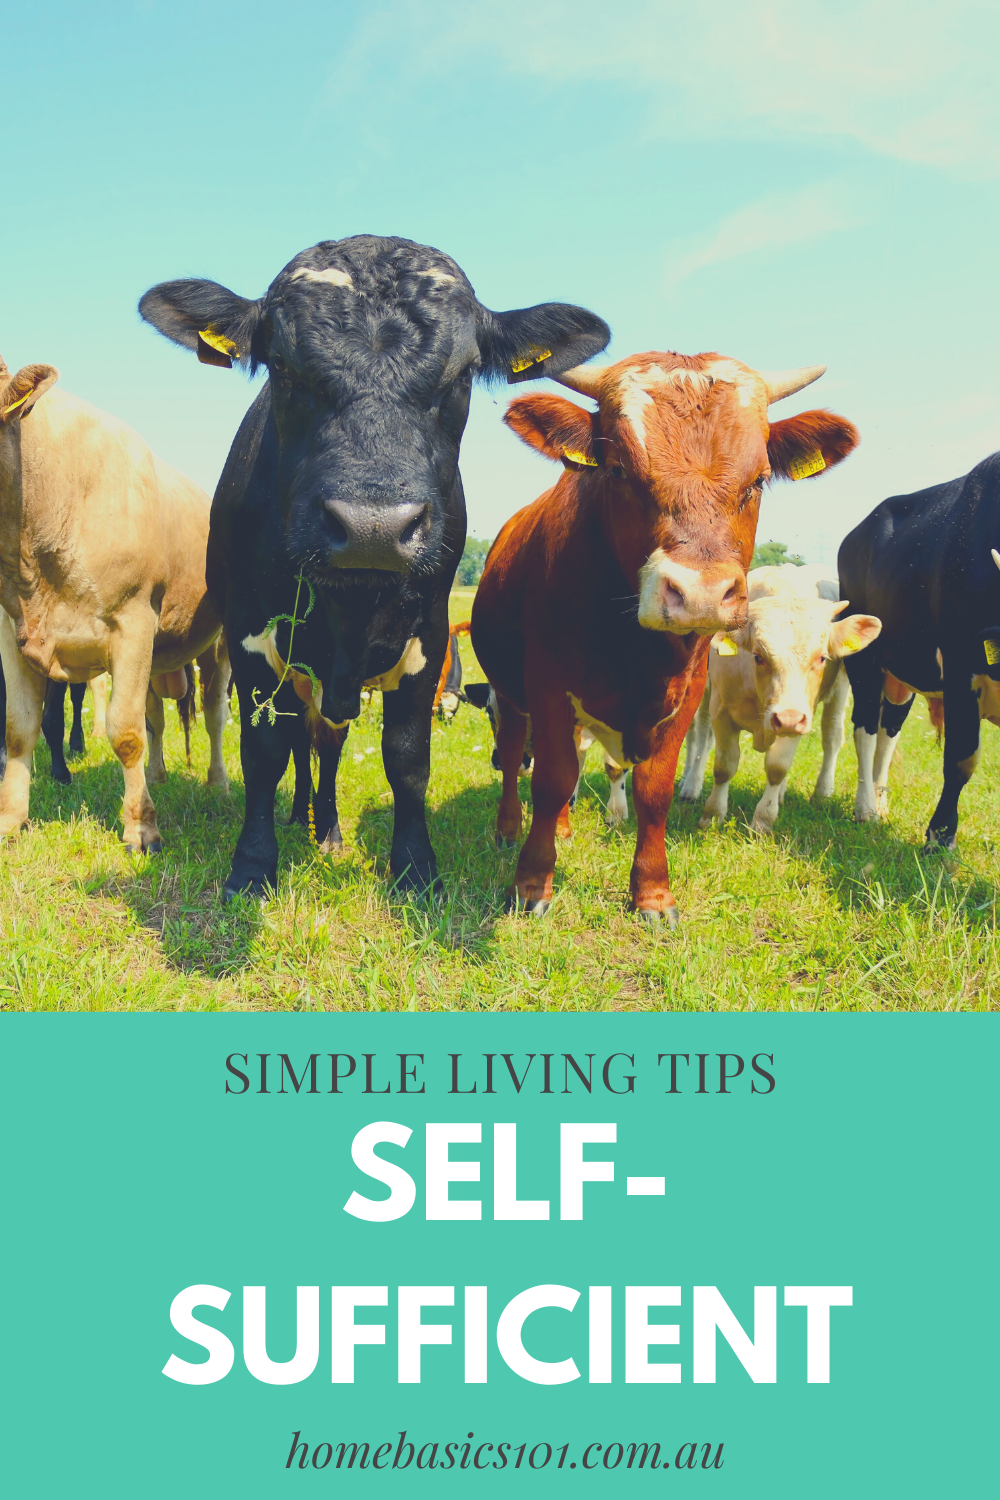 Tips to living a Simple Self-sufficient life